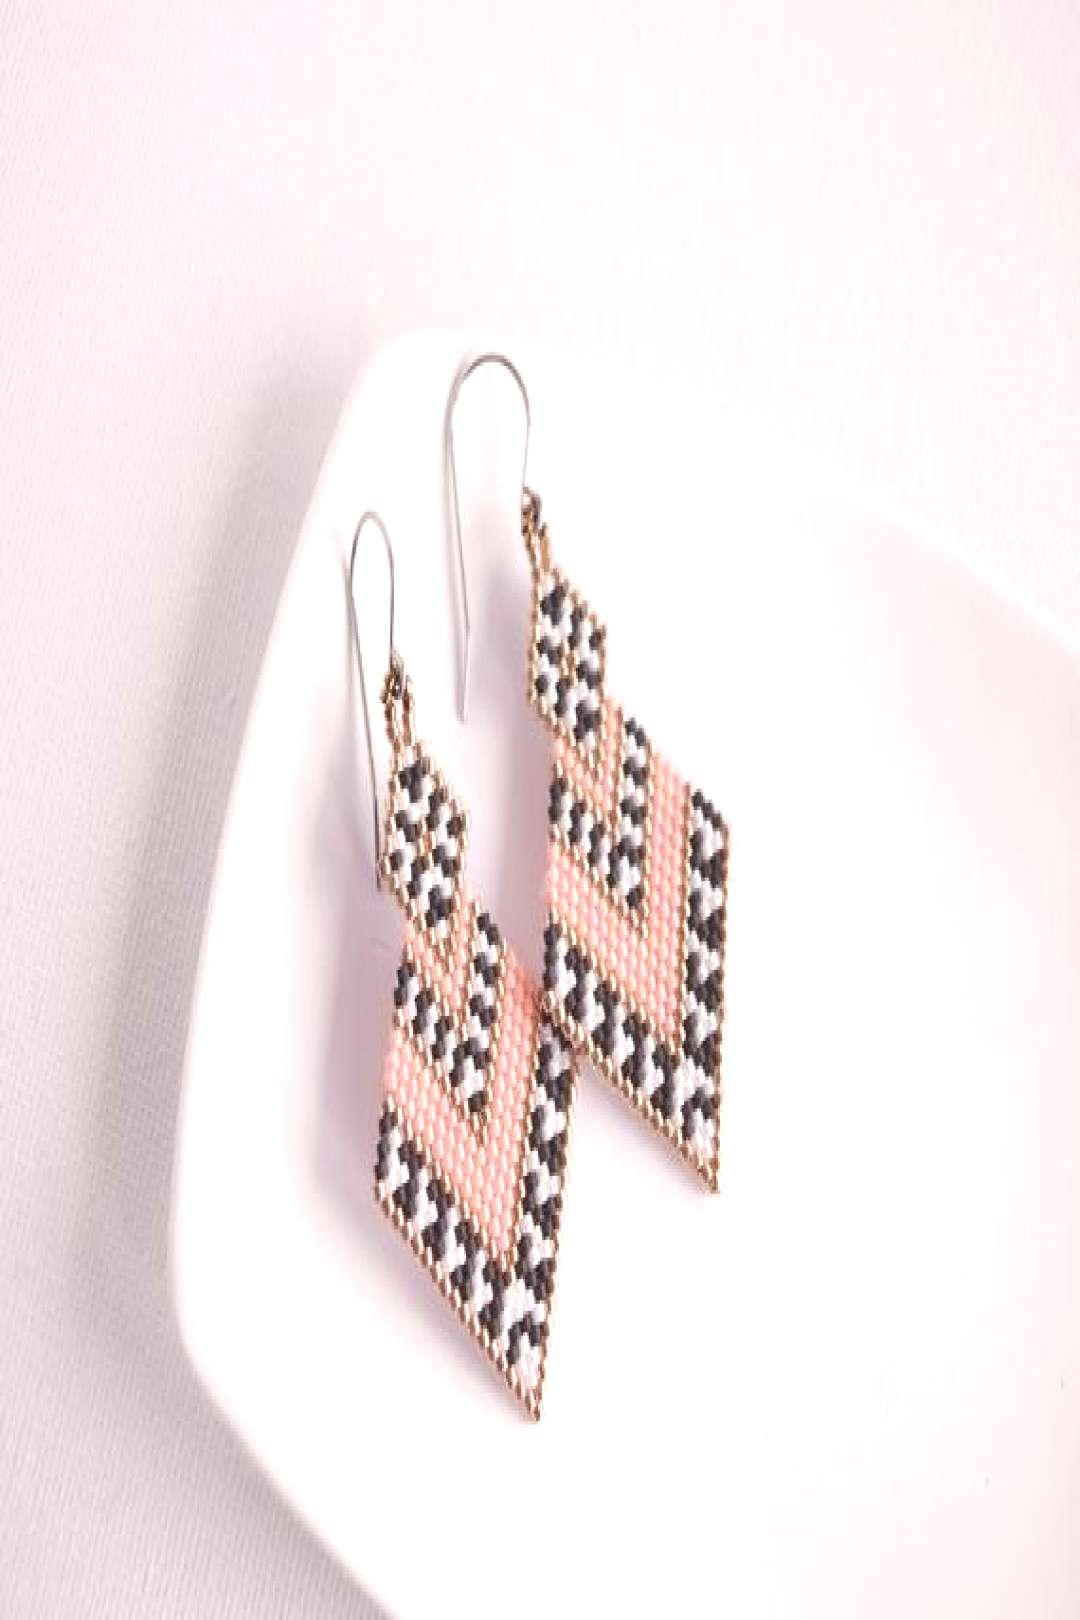 ❣️ Coral pink, black and white earrings. Very lightweight. FREE WORLDWIDE SHIPPING by Russian p